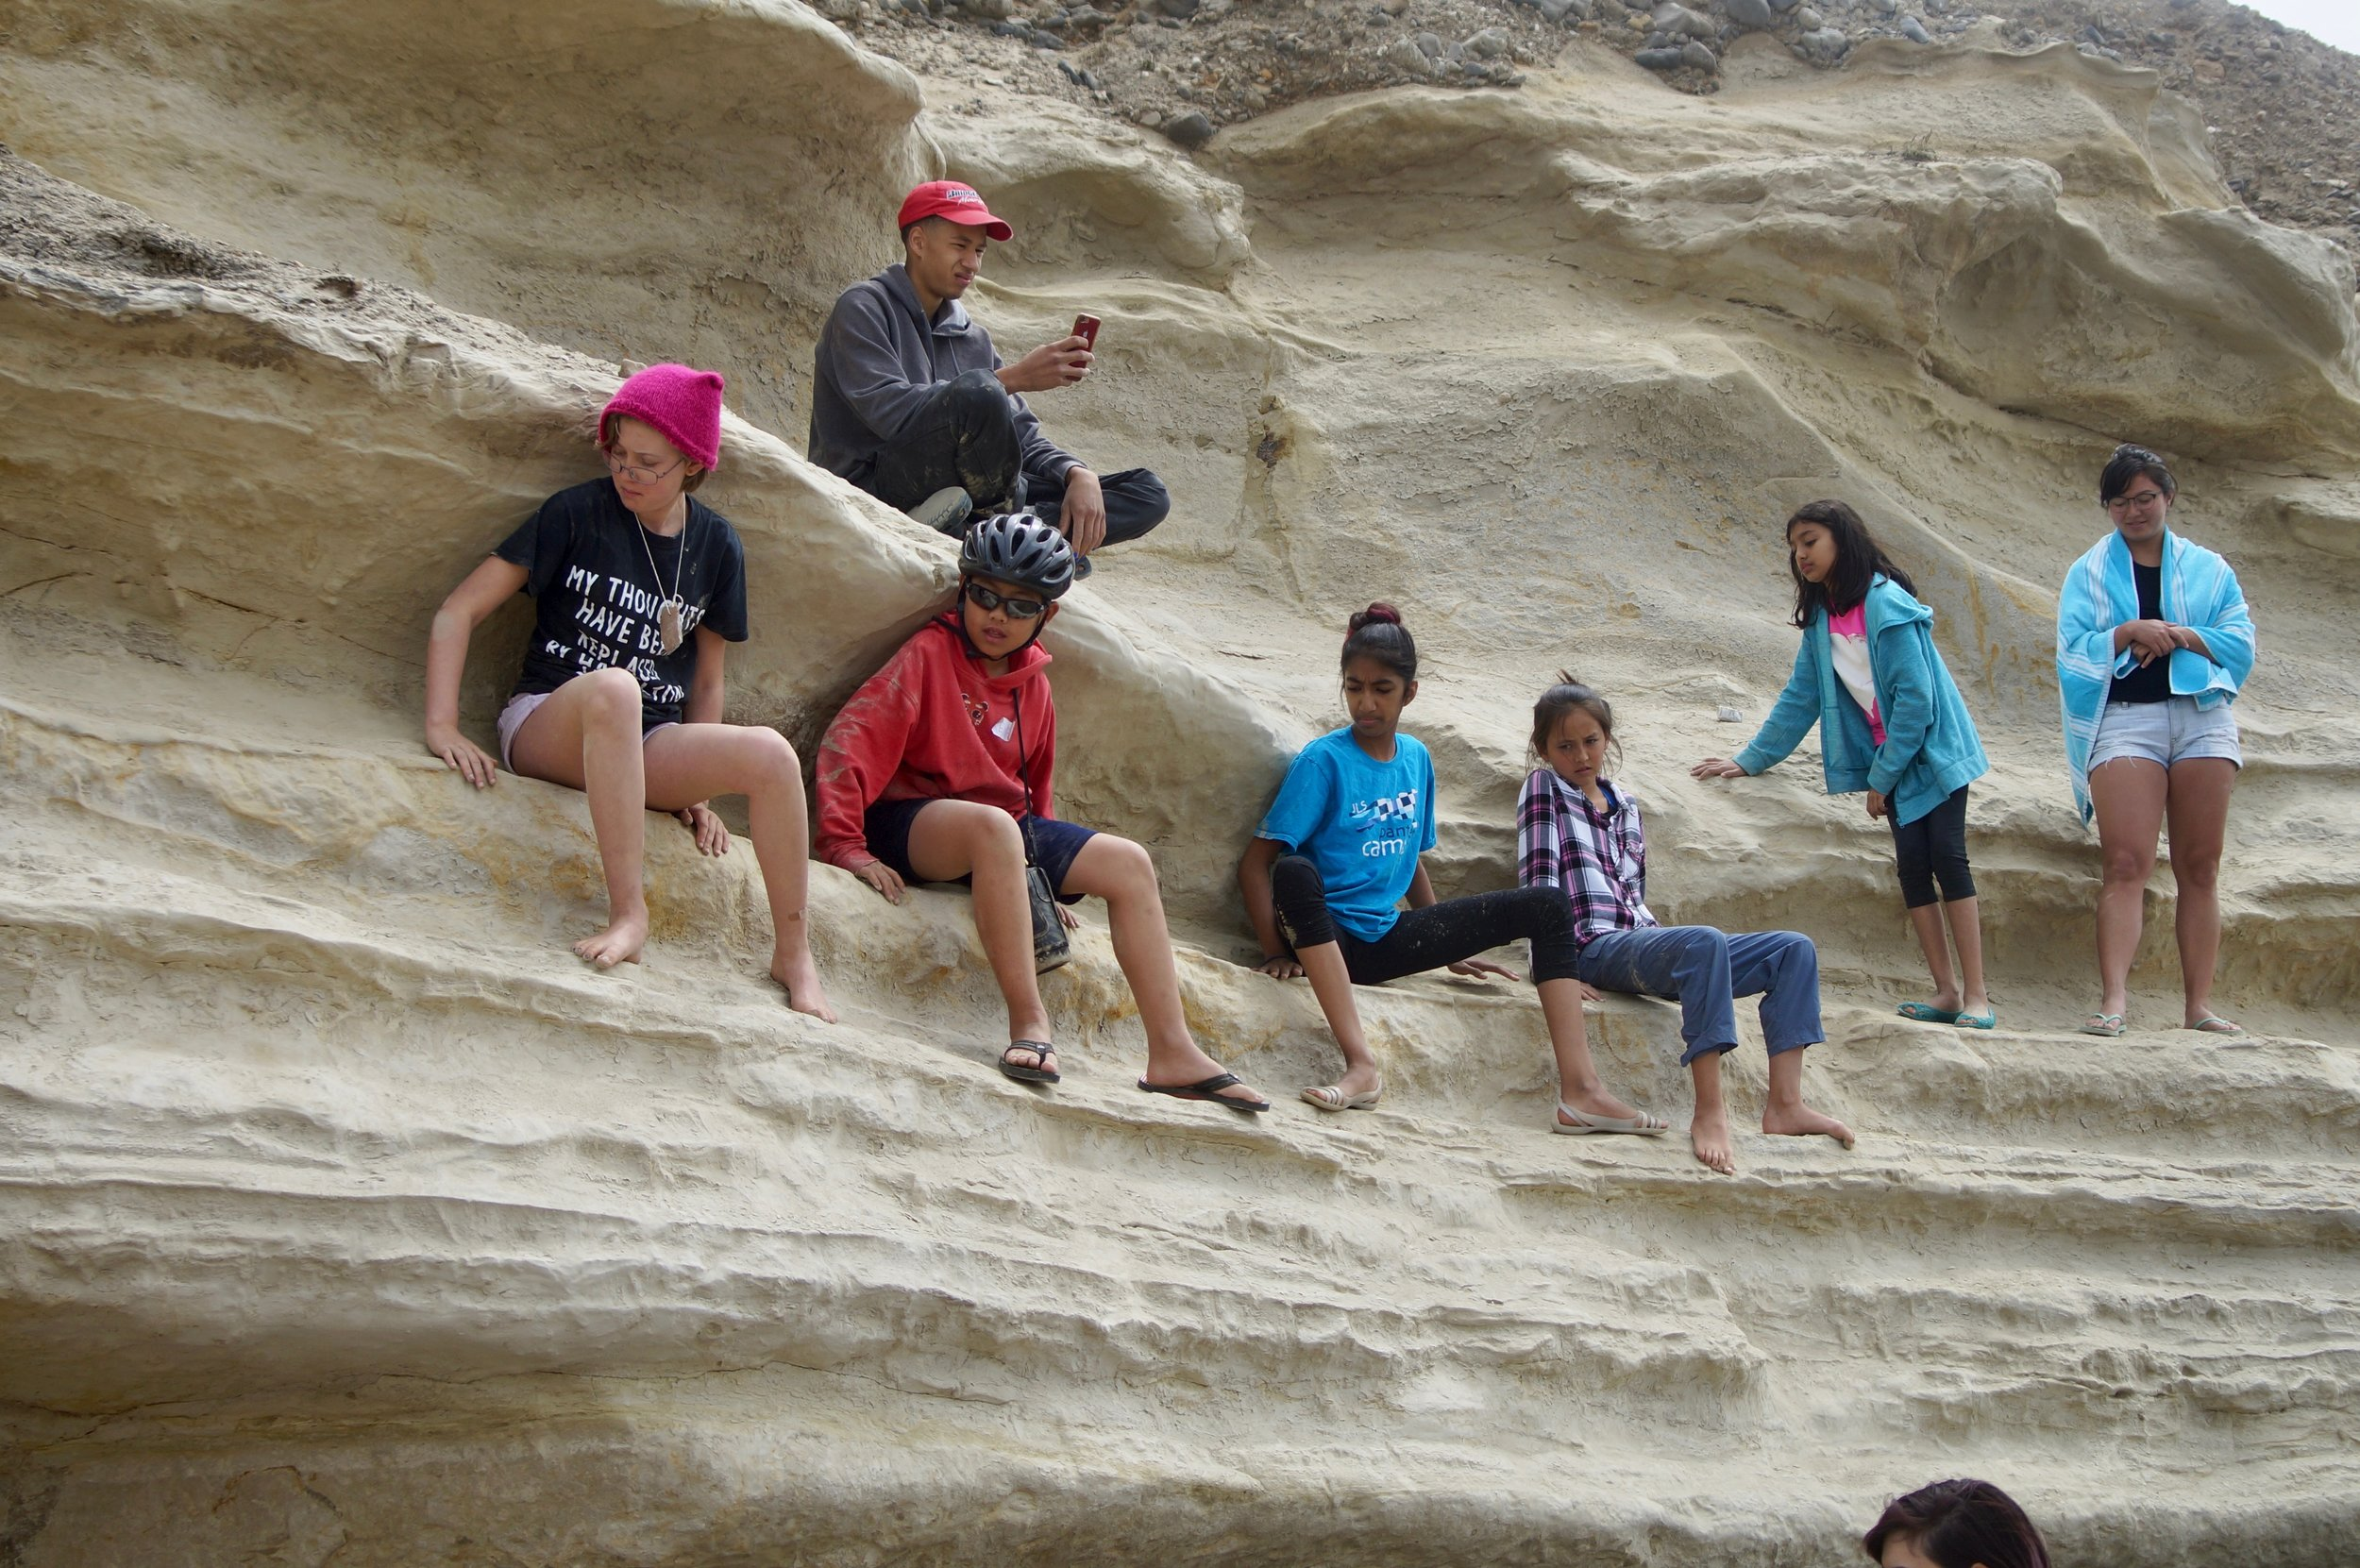 The campers try to navigate across the treacherous cliff and make their way towards the beach.